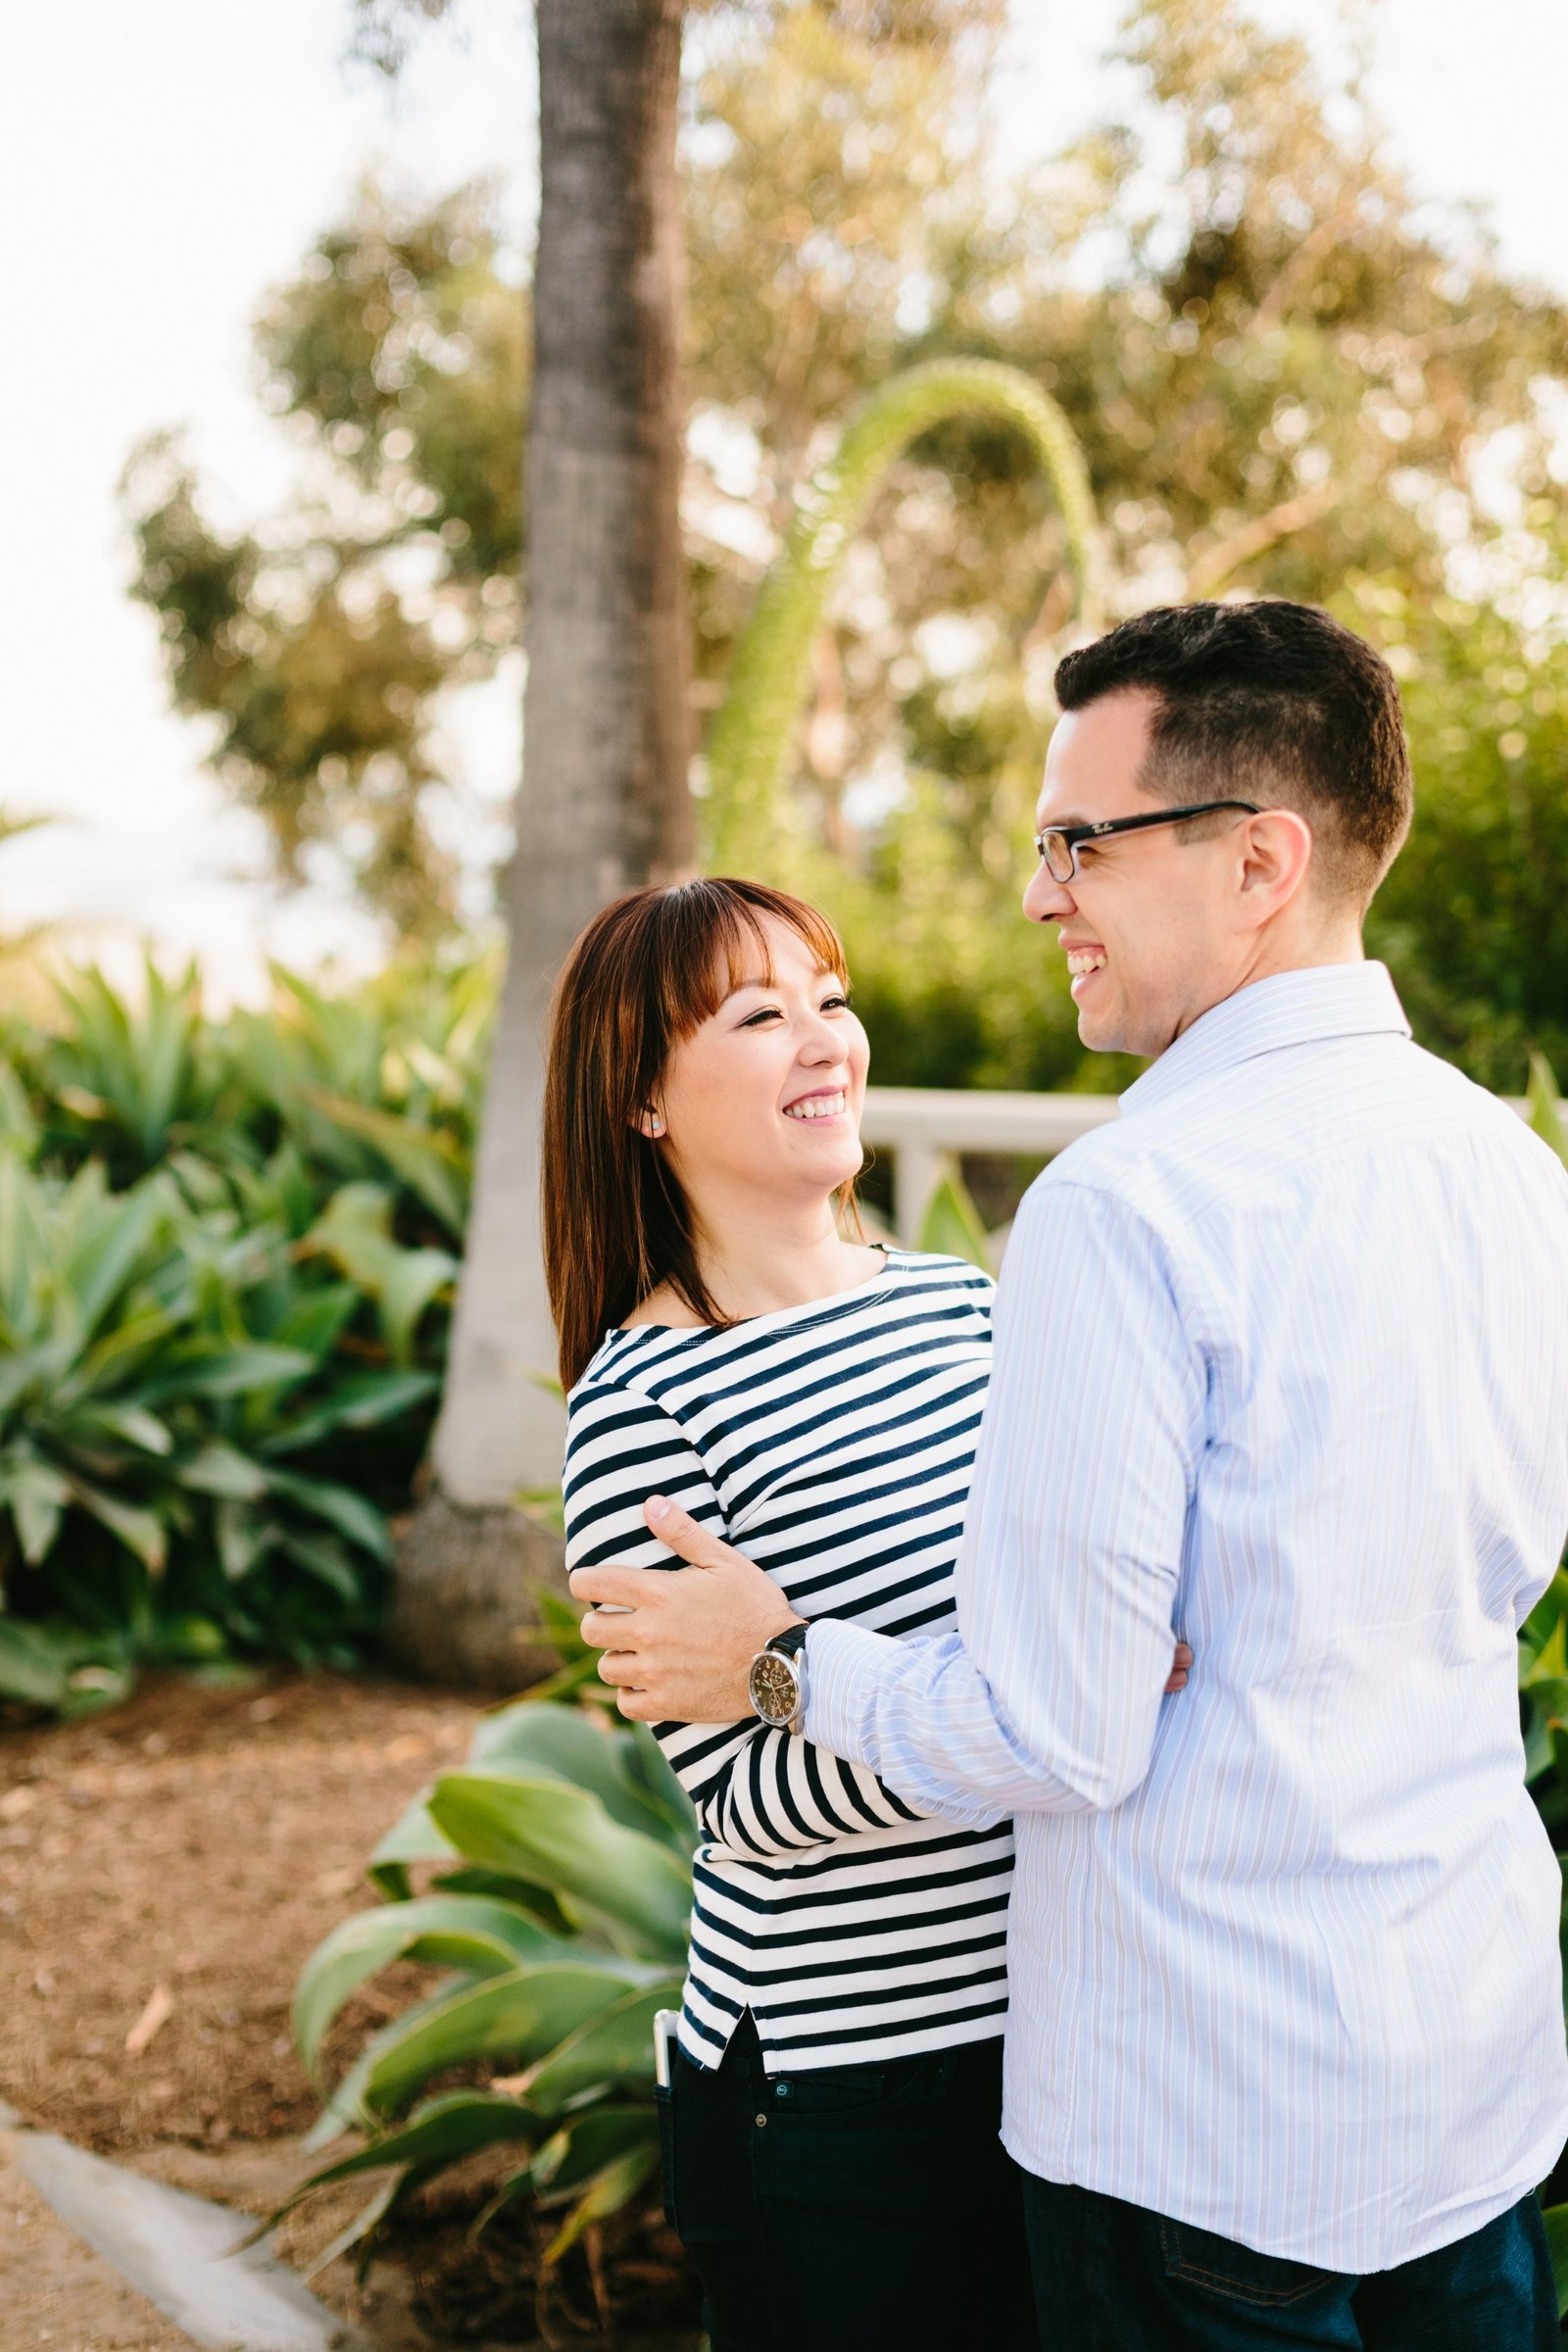 Engagement Photos-Jodee Debes Photography-179